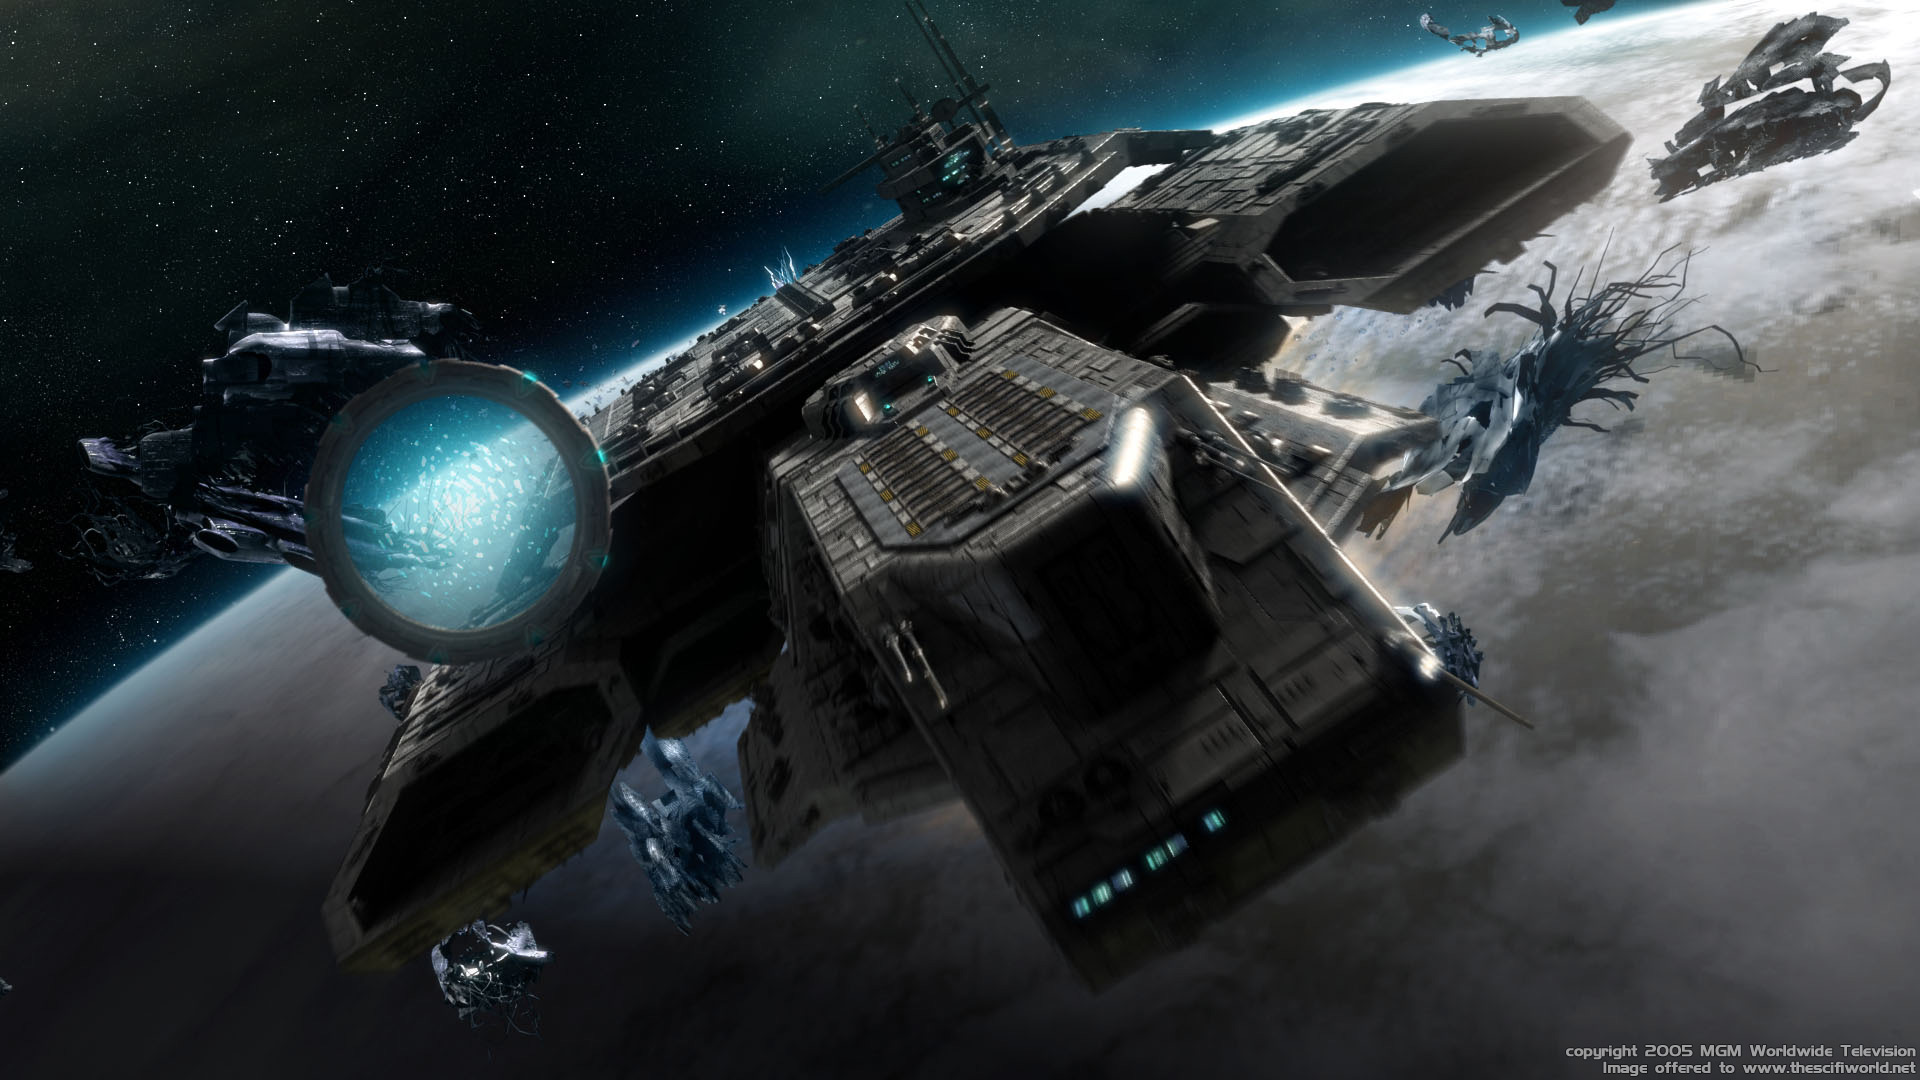 Top movie wallpaper 1920x1080 wallpapersafari for Outer space movies